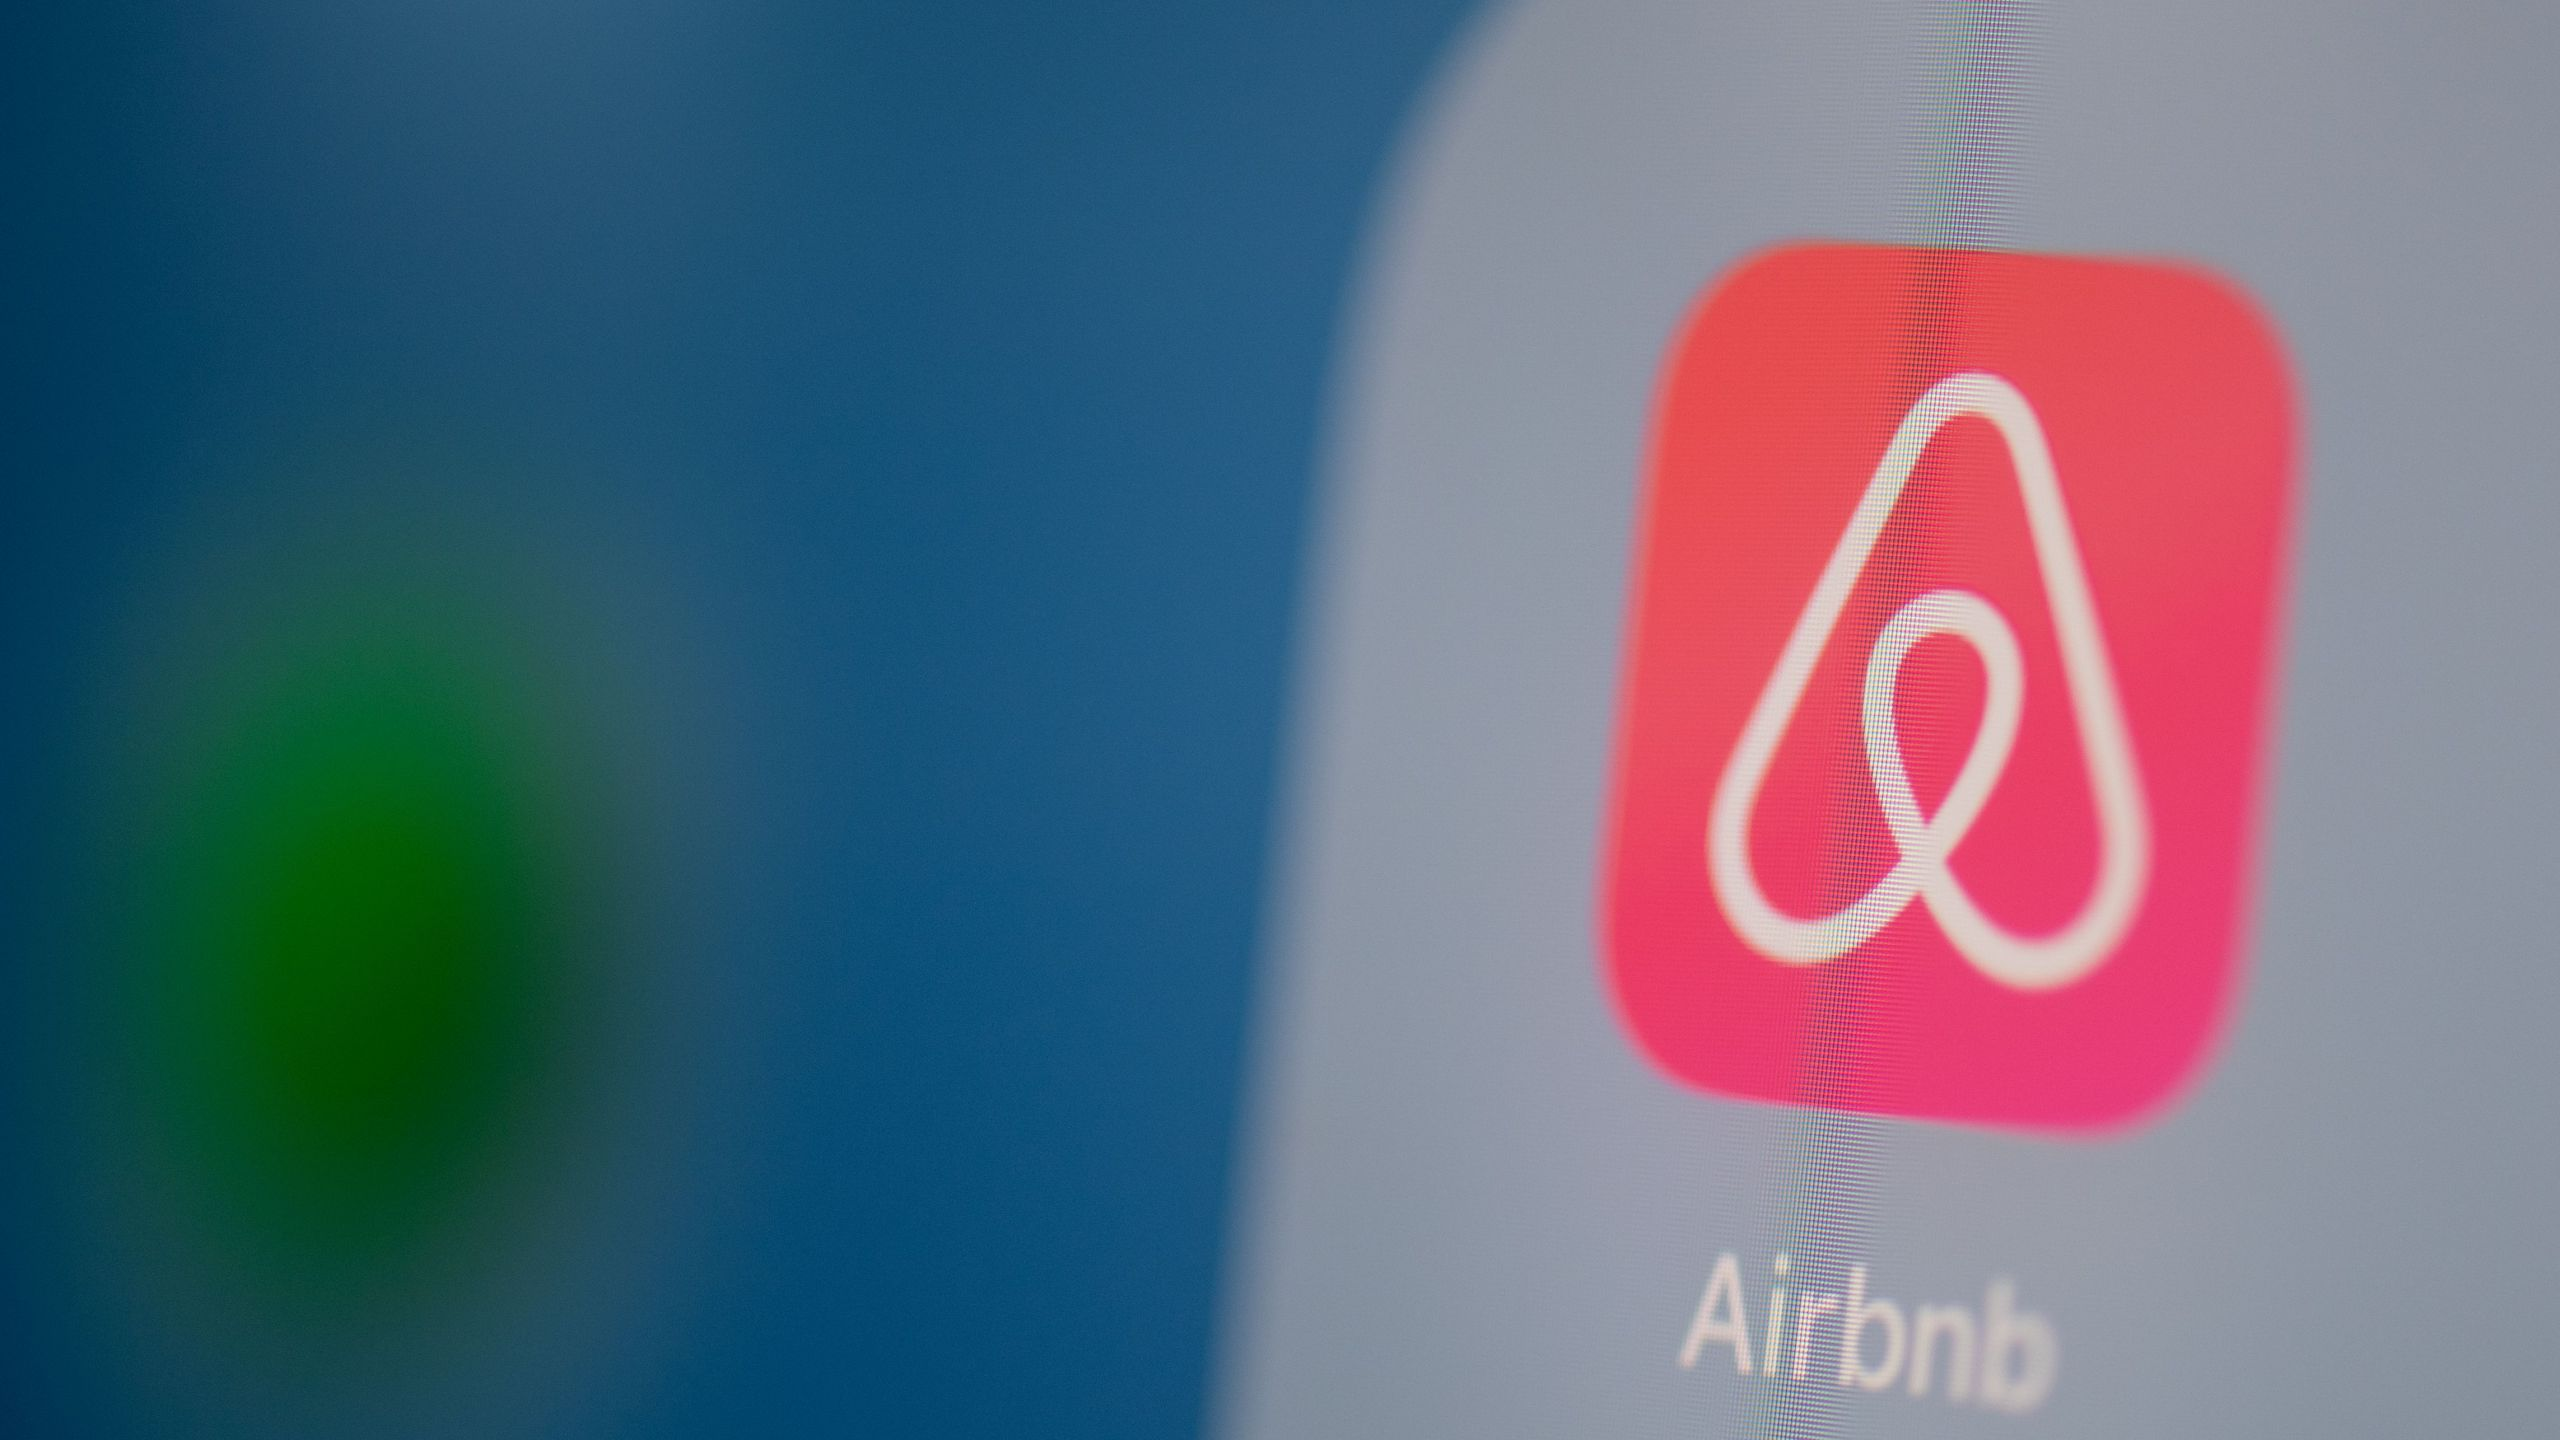 This illustration picture taken on July 24, 2019, in Paris shows the Airbnb logo on the screen of a tablet. (MARTIN BUREAU/AFP via Getty Images)